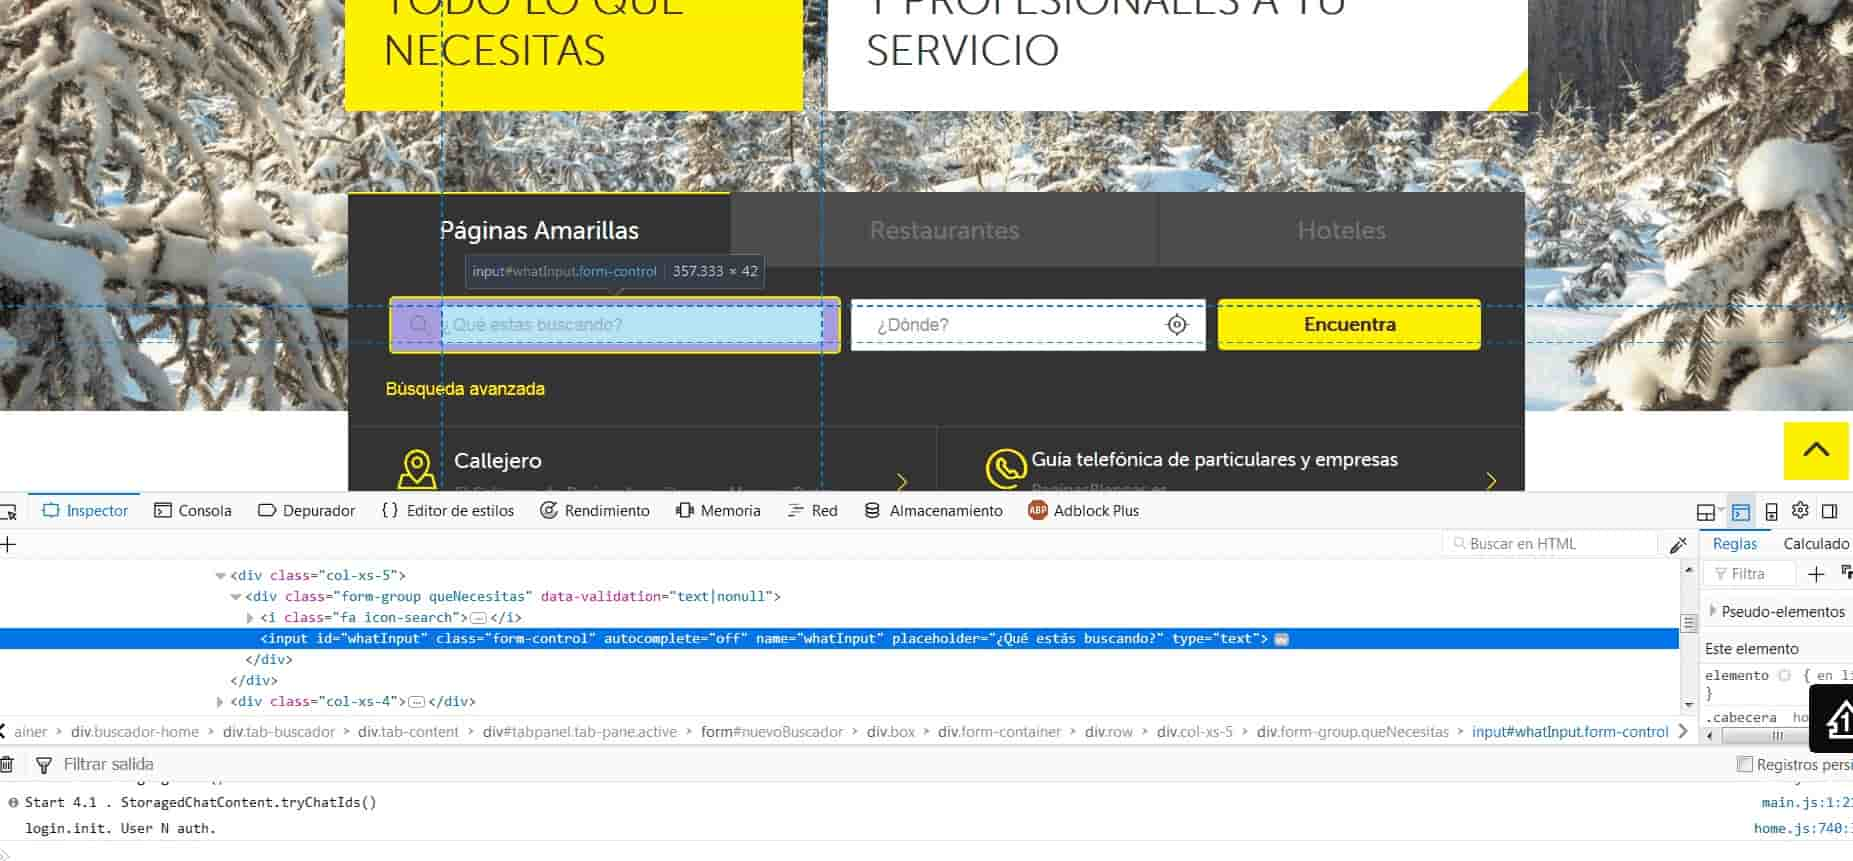 paginas-amarillas-web-scraping-aprender-python